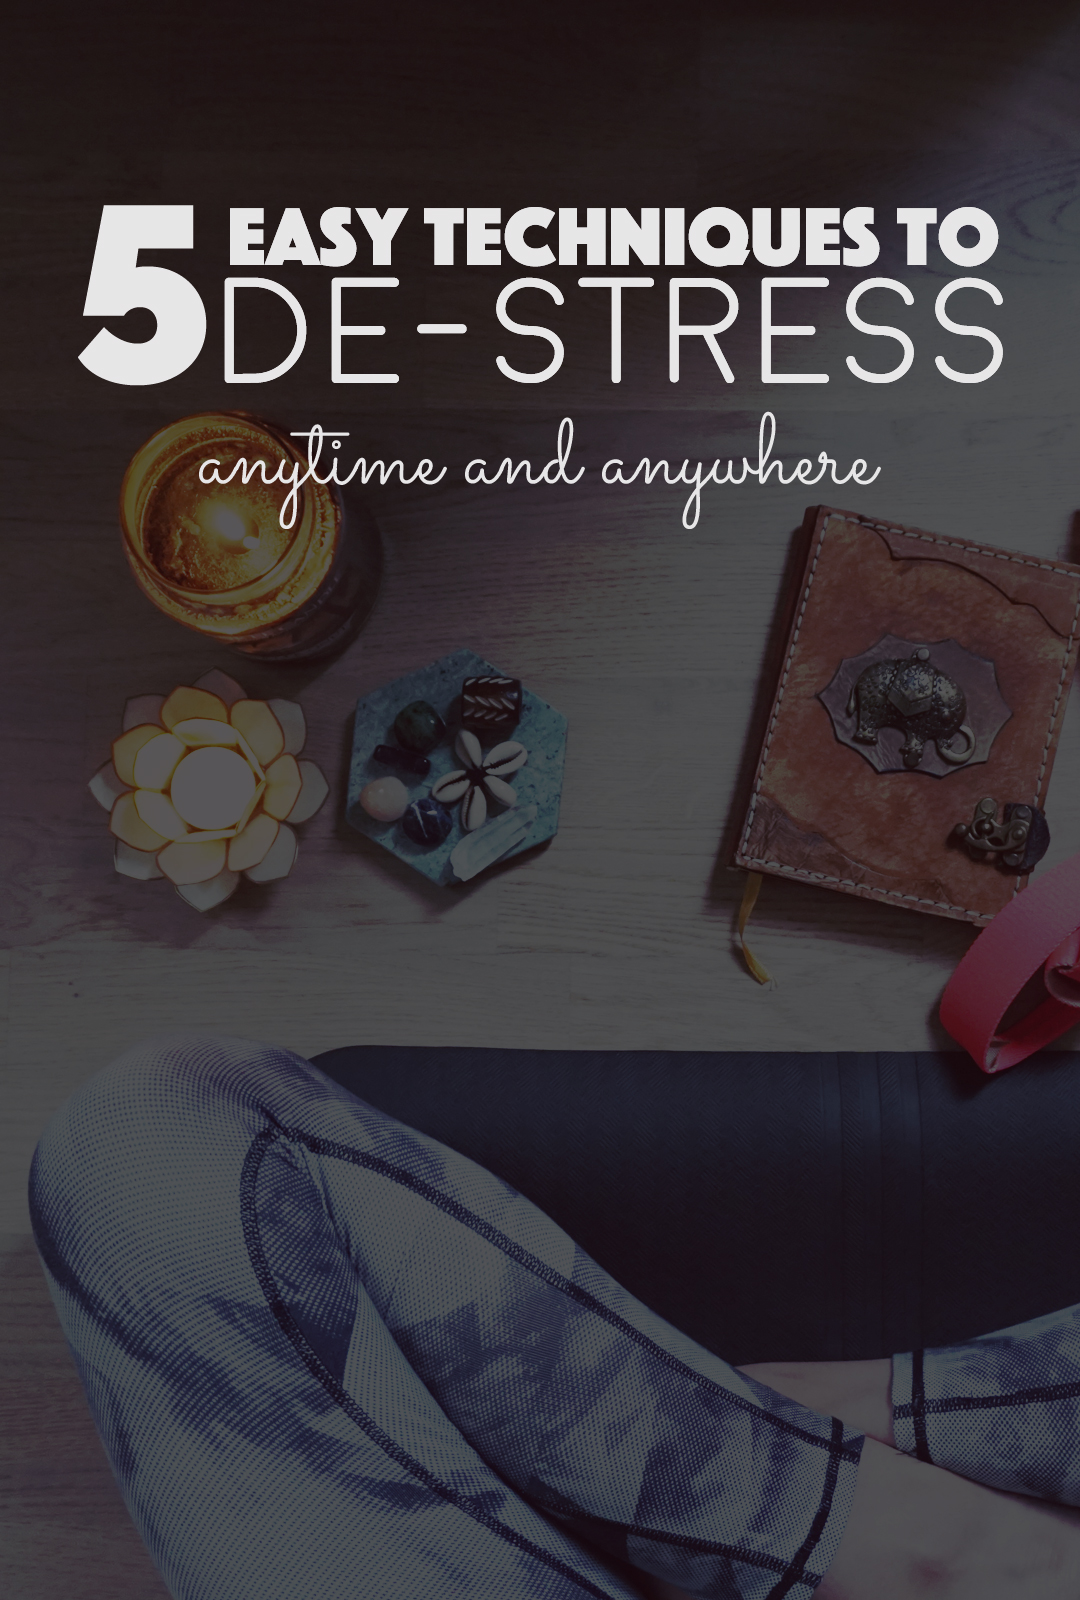 Easy Techniques To Destress | BananaBloom.com